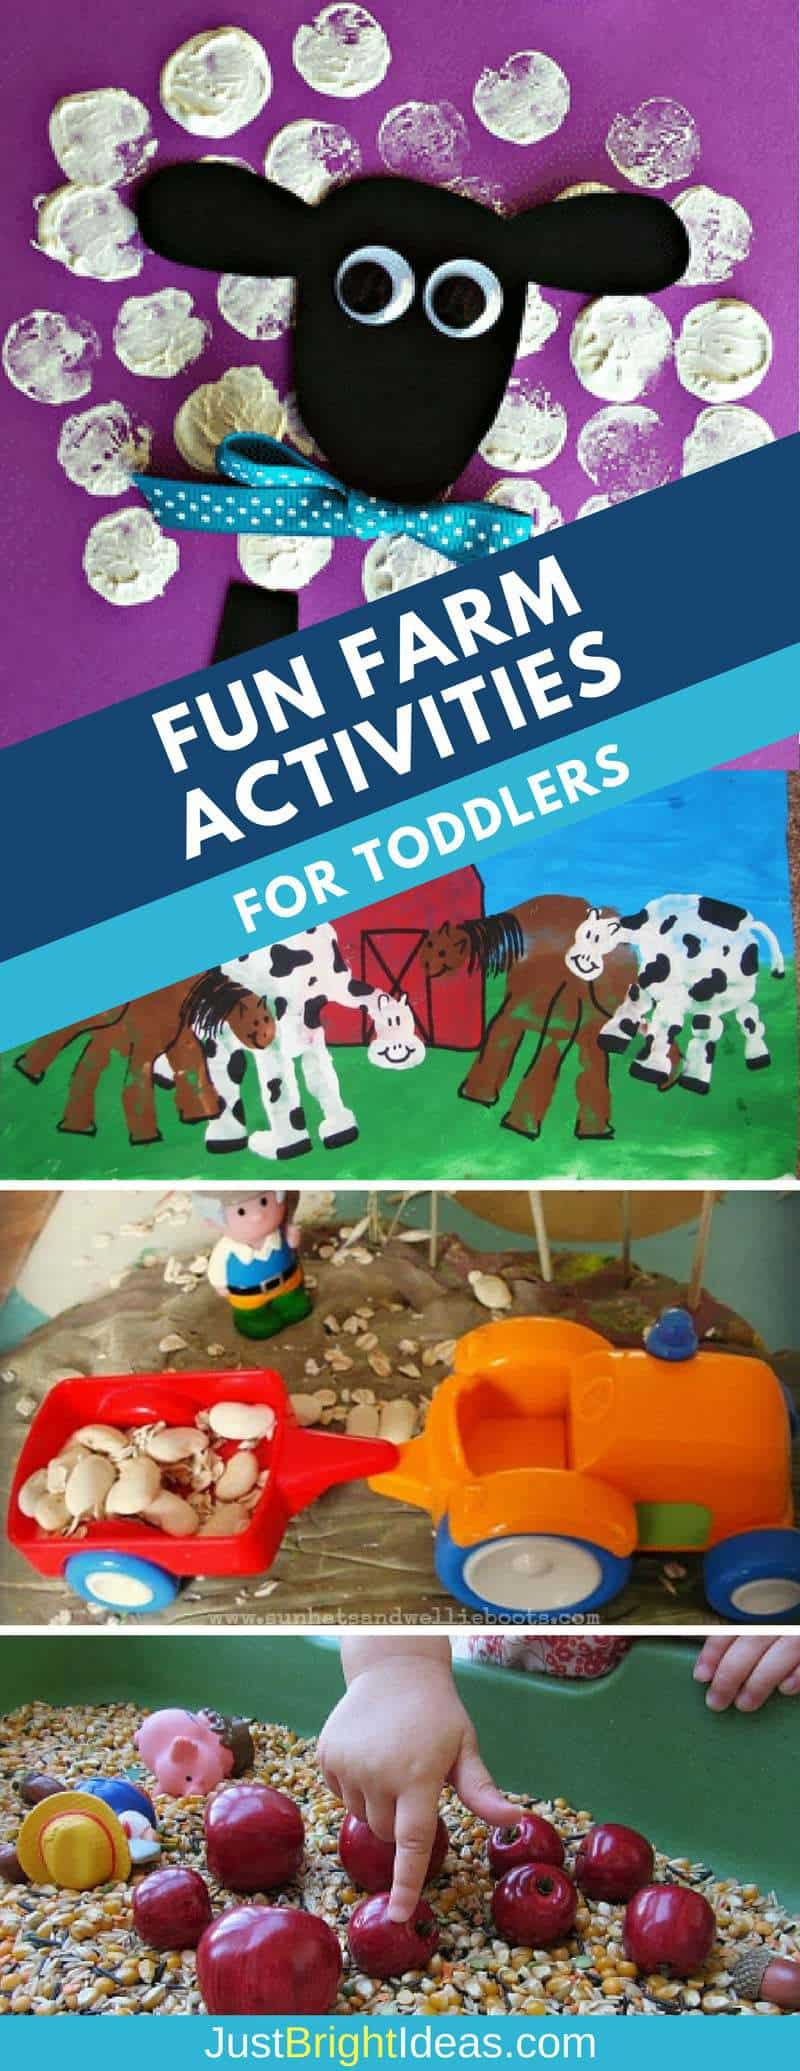 fun farm activities for toddlers